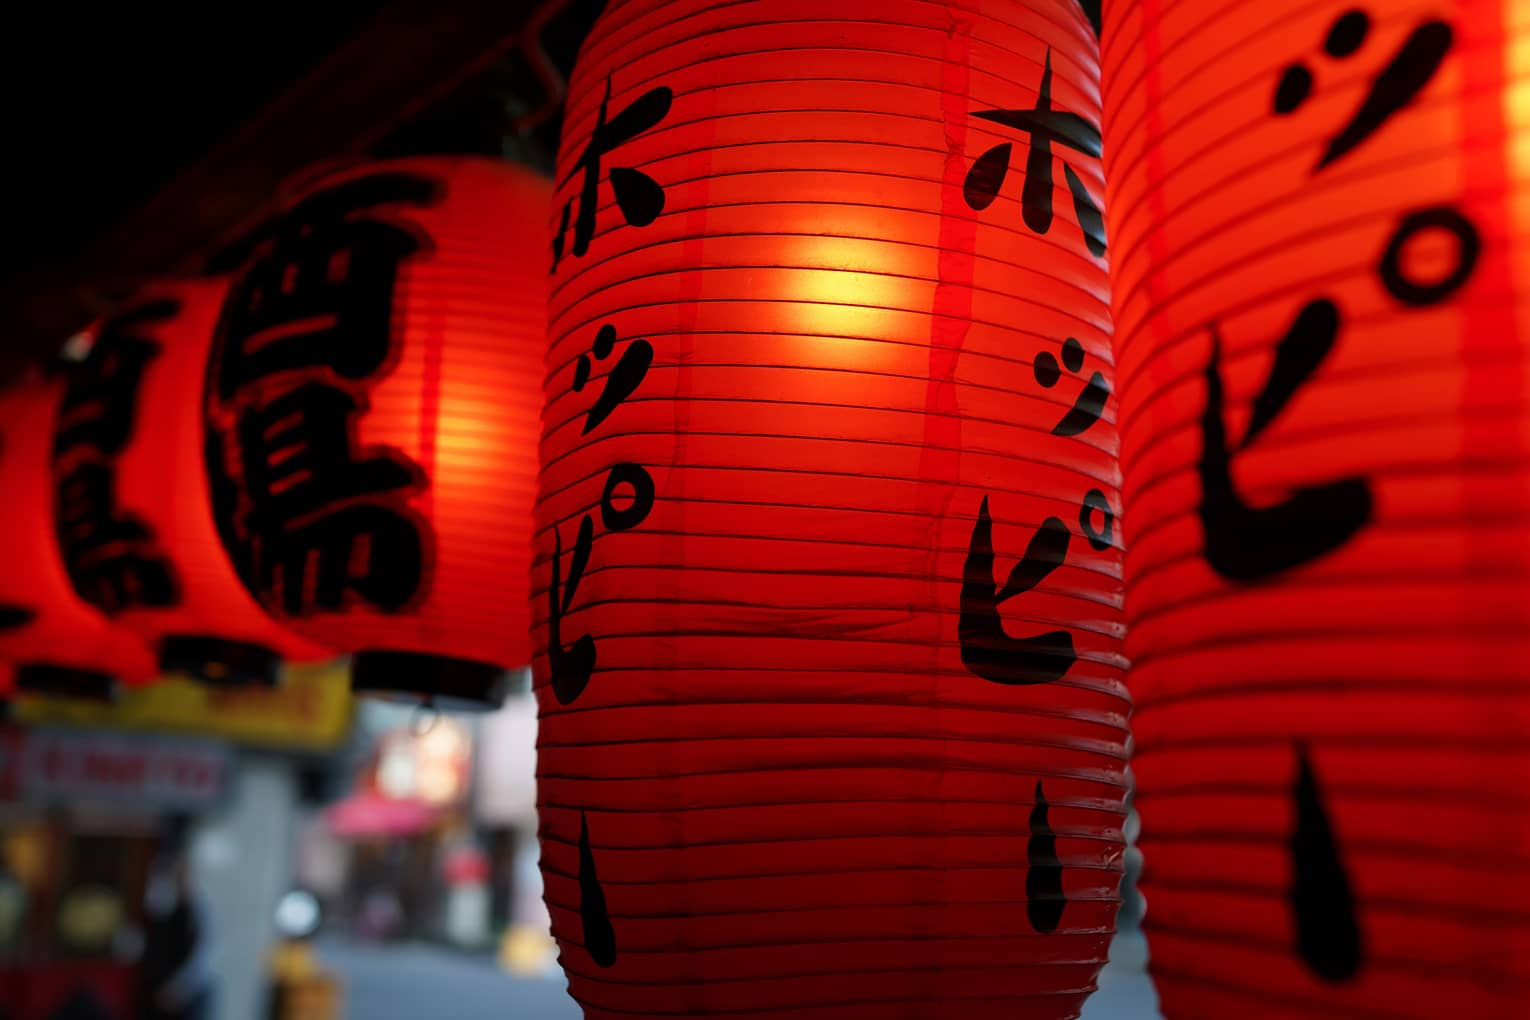 A close-up of illuminated red lanterns decorated with black Japanese writing